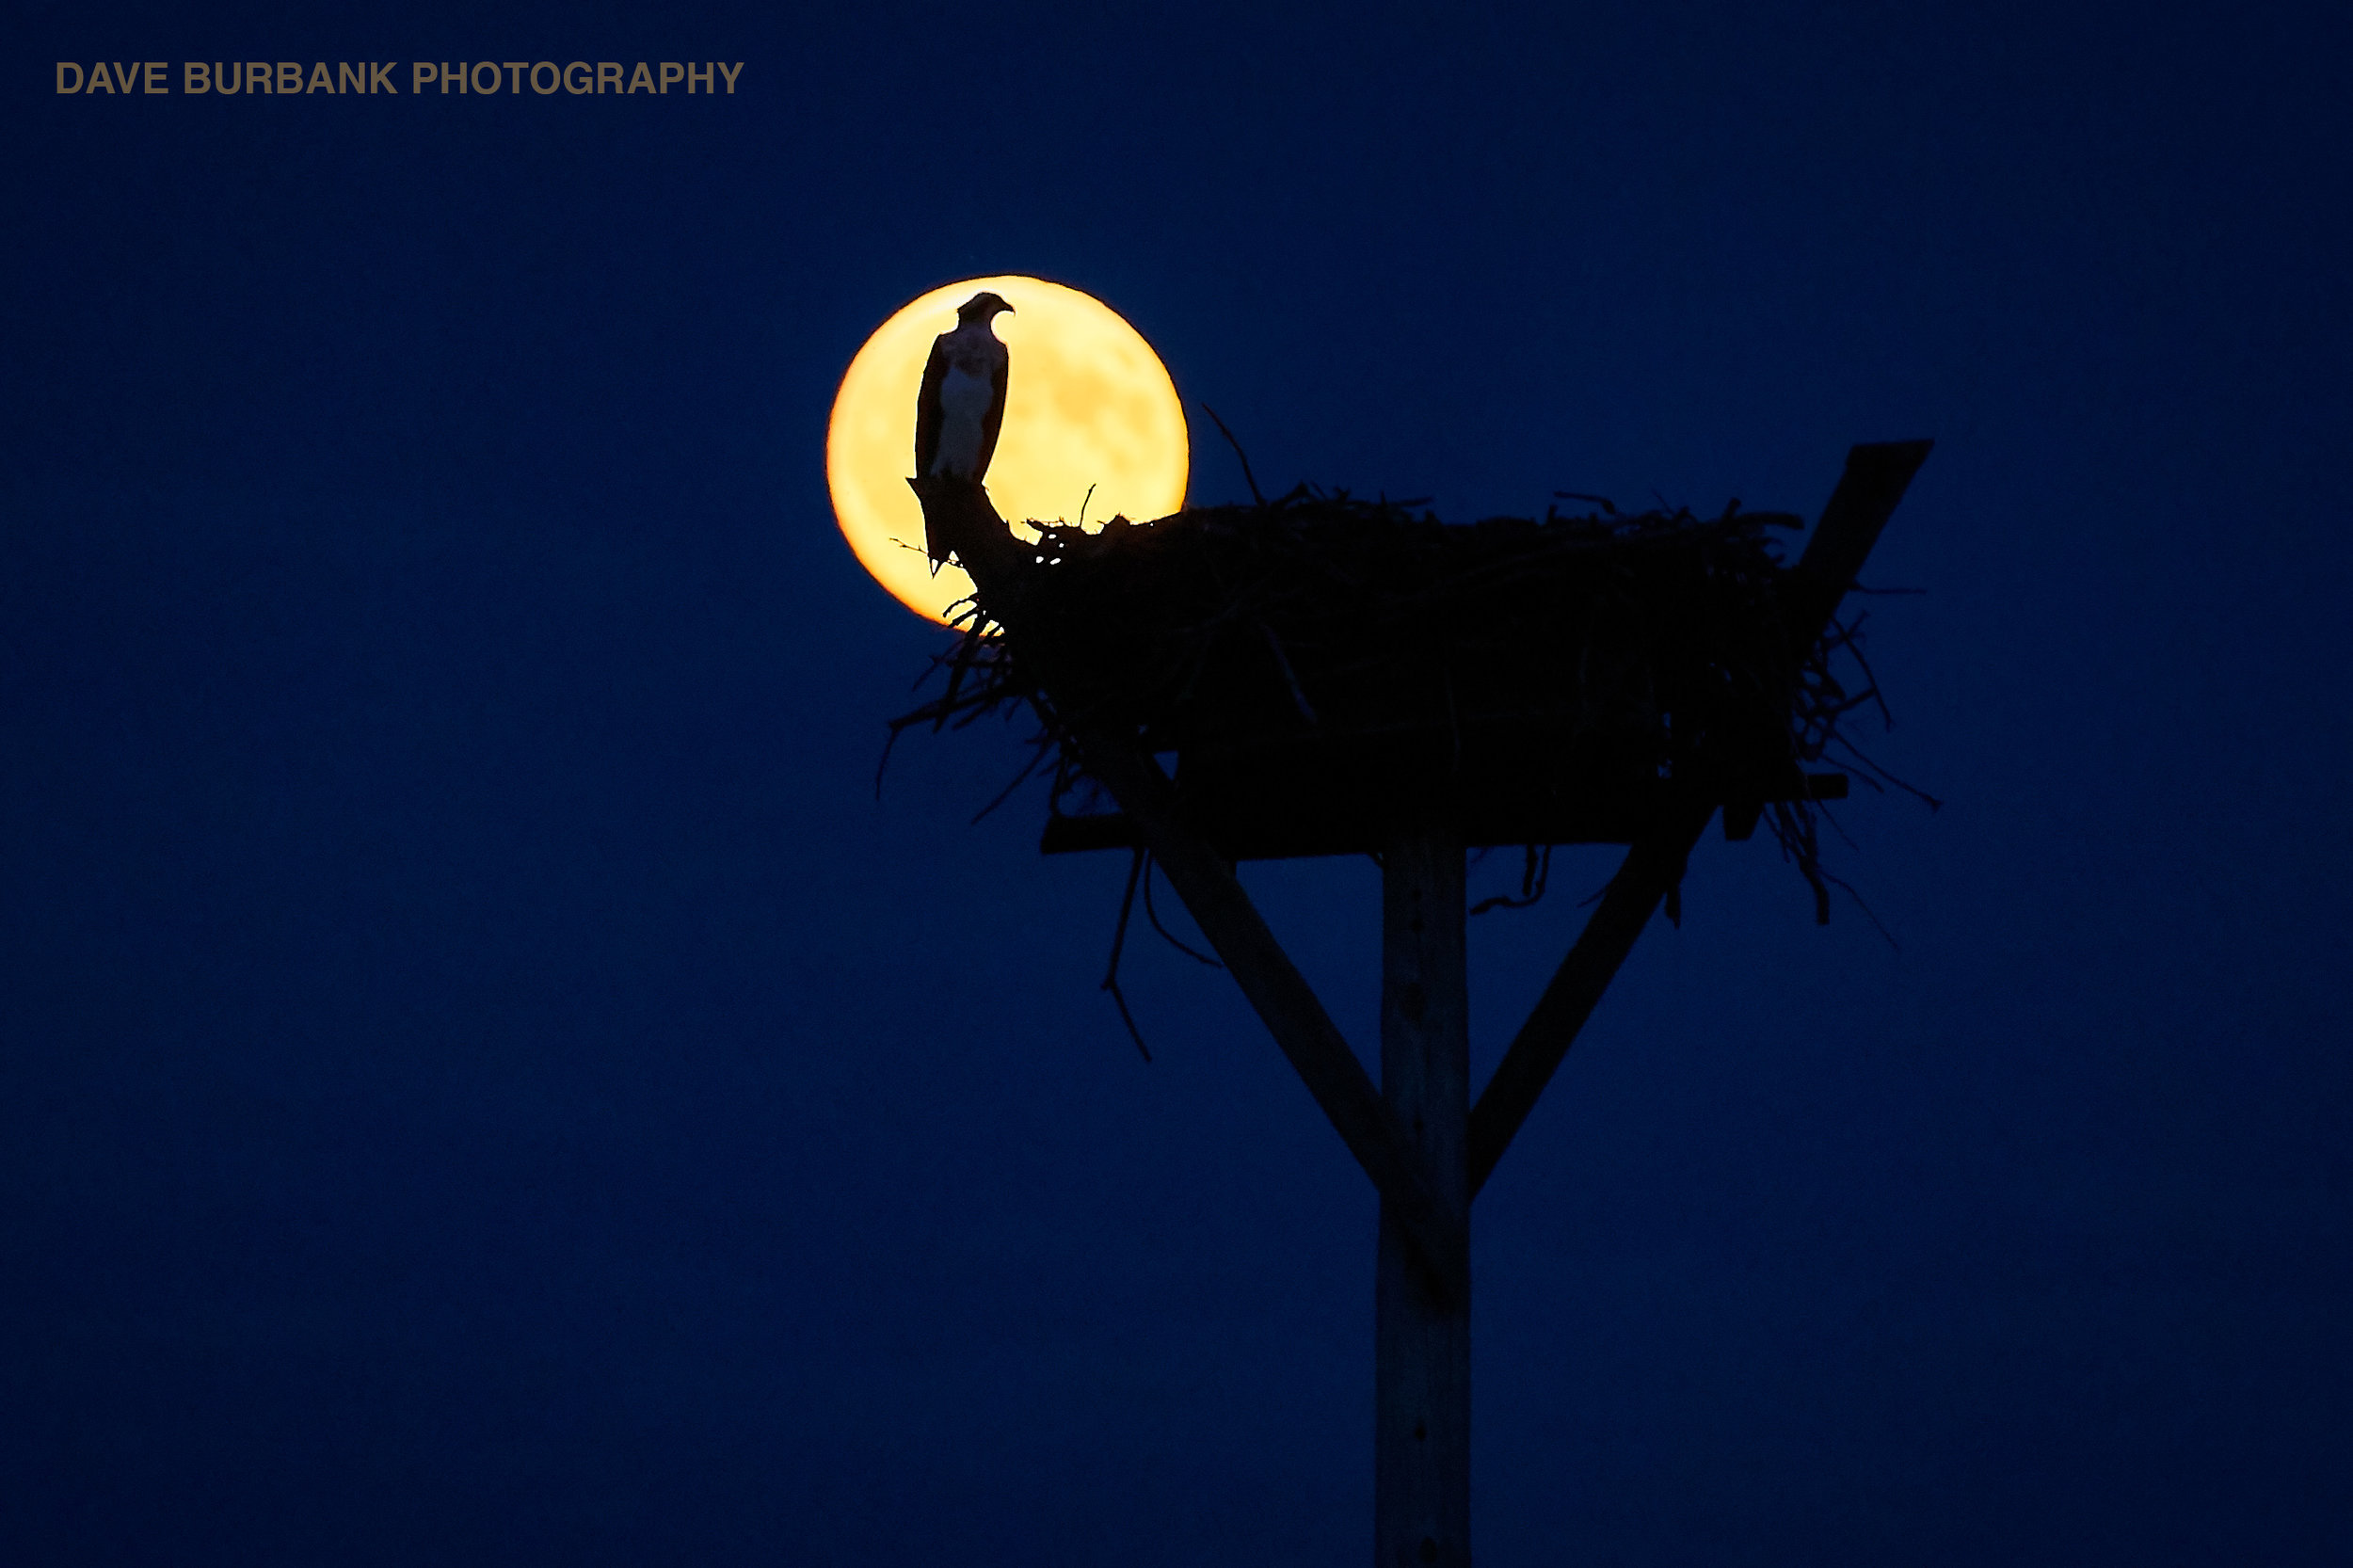 osprey-full-moon.jpg